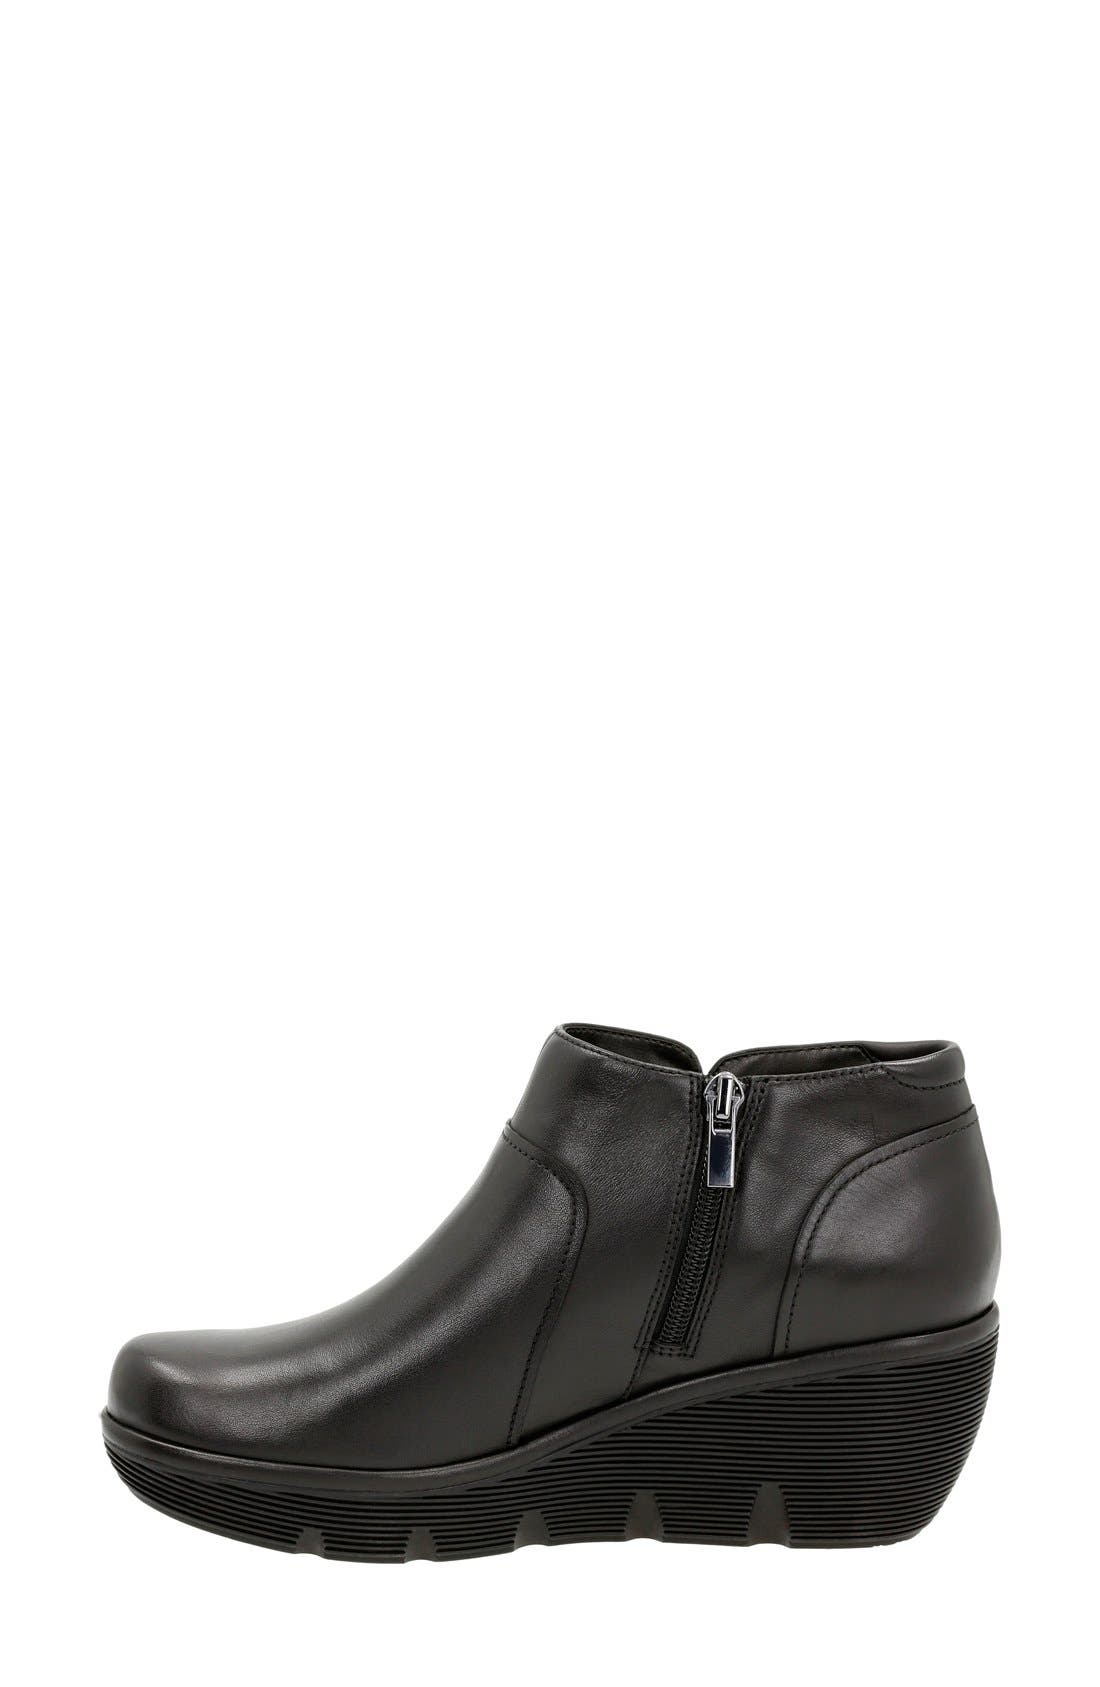 'Clarene Sun' Wedge Boot,                             Alternate thumbnail 2, color,                             Black Leather